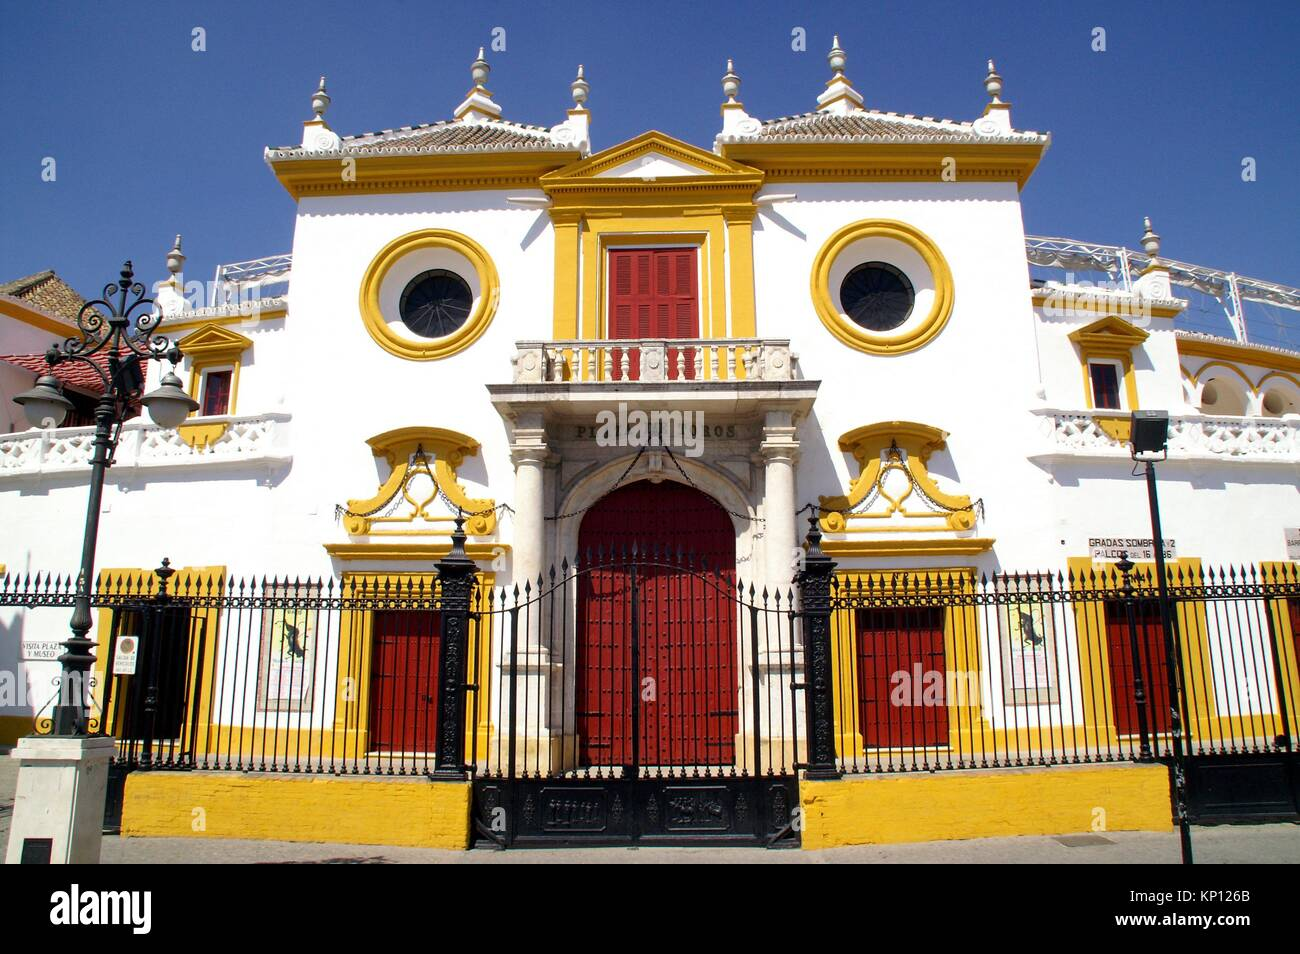 Sevilla (Spain). Bullring of the Real Maestranza de Caballería de Sevilla. - Stock Image